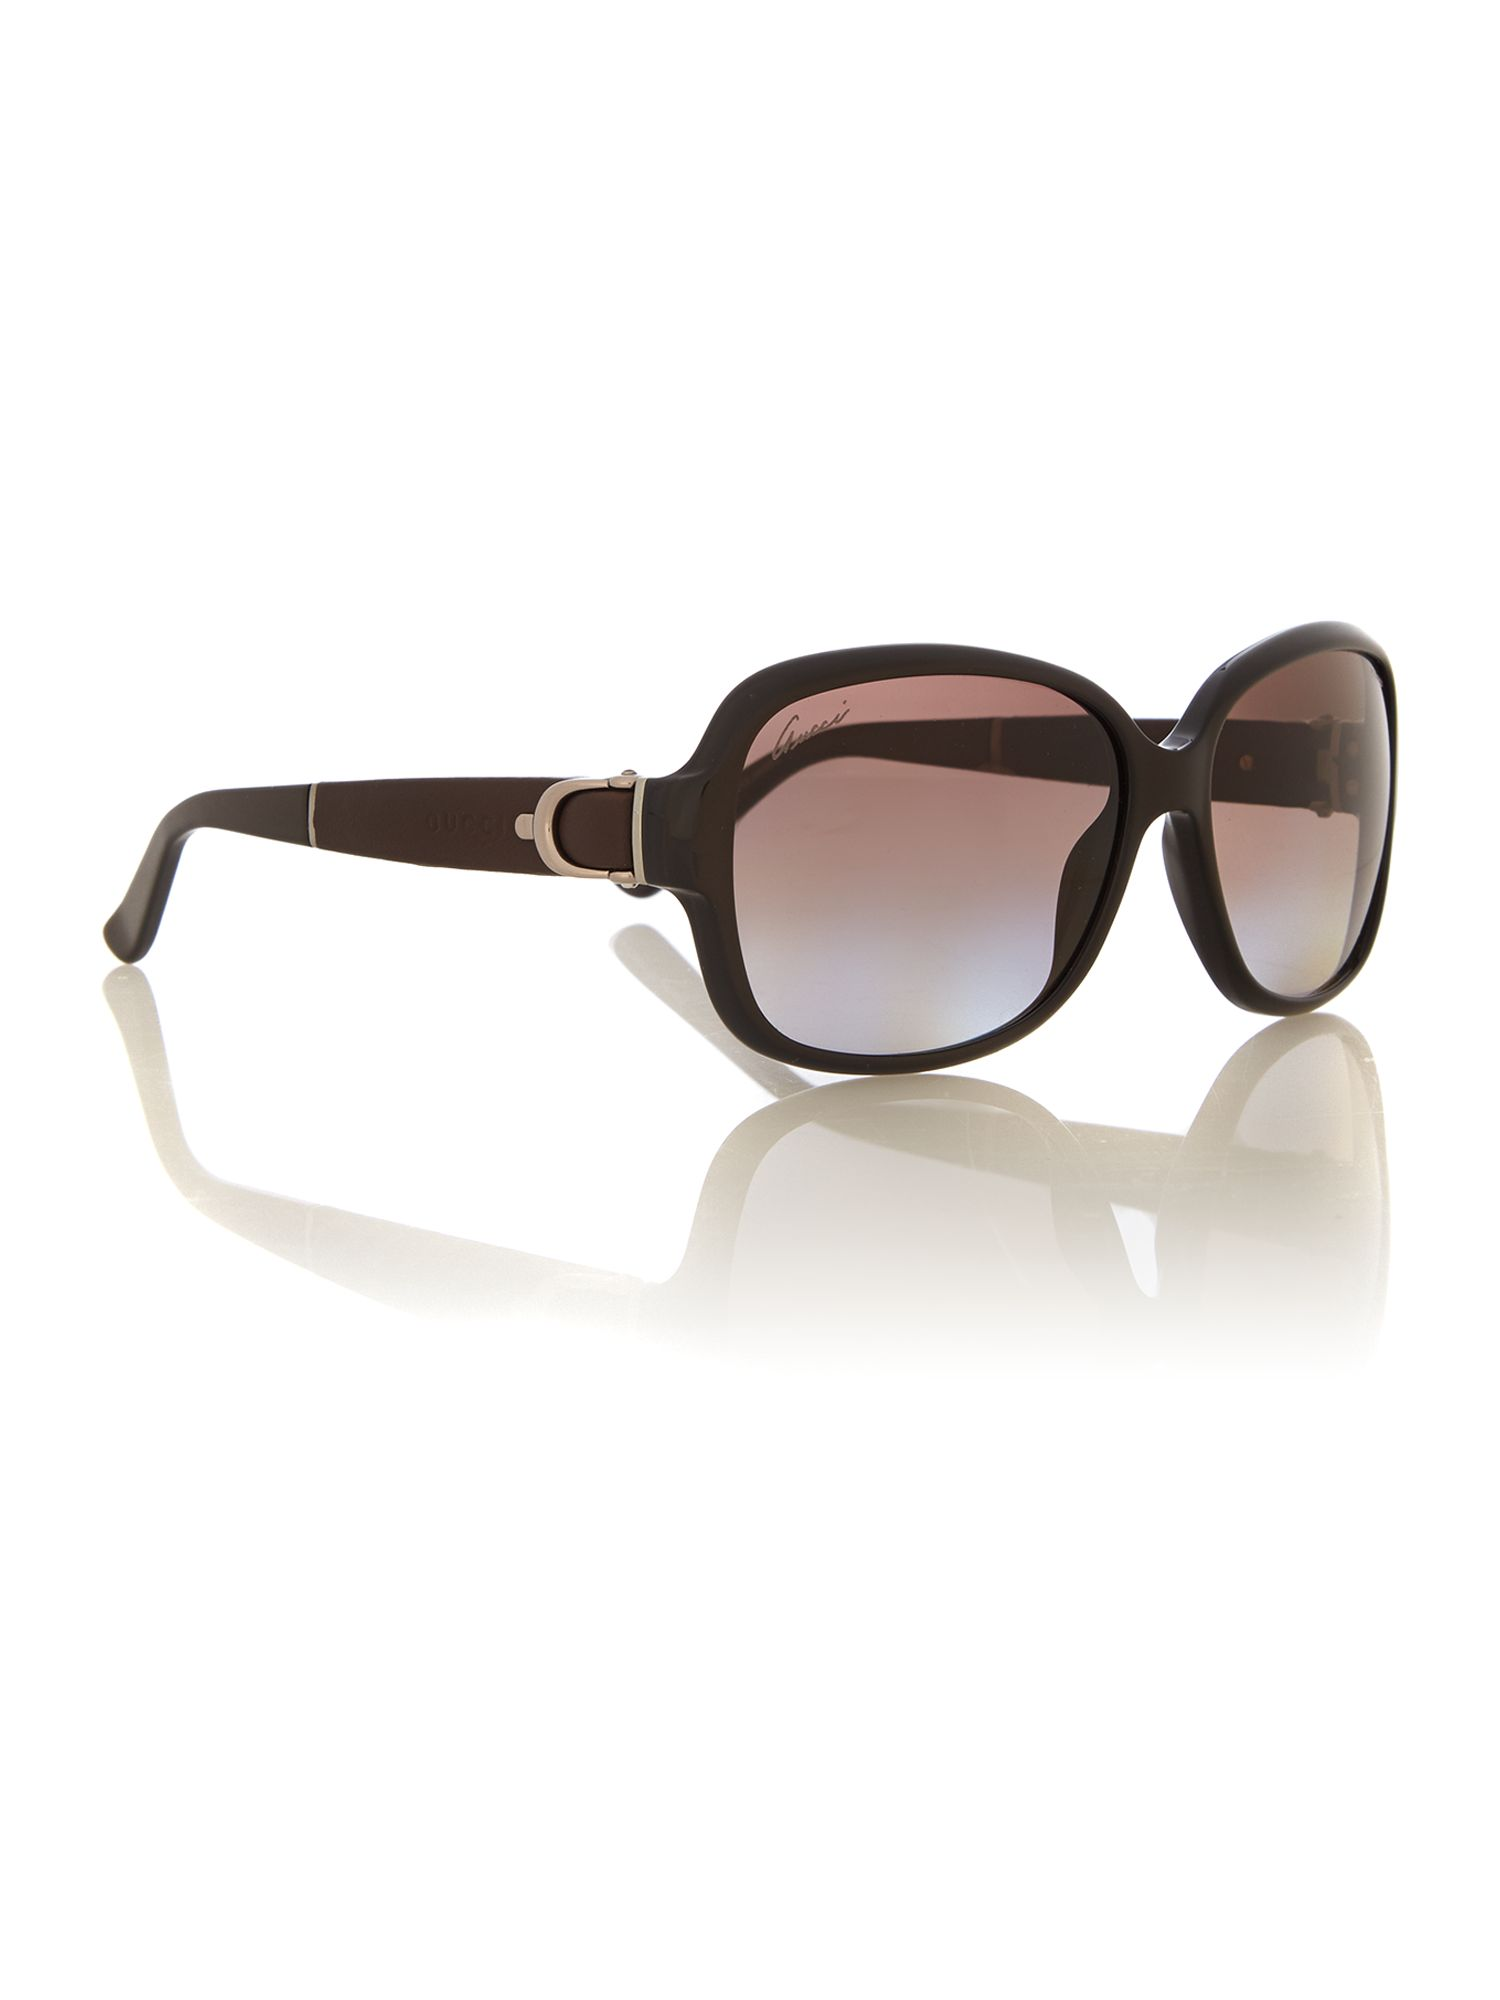 Women`s rectangle sunglasses